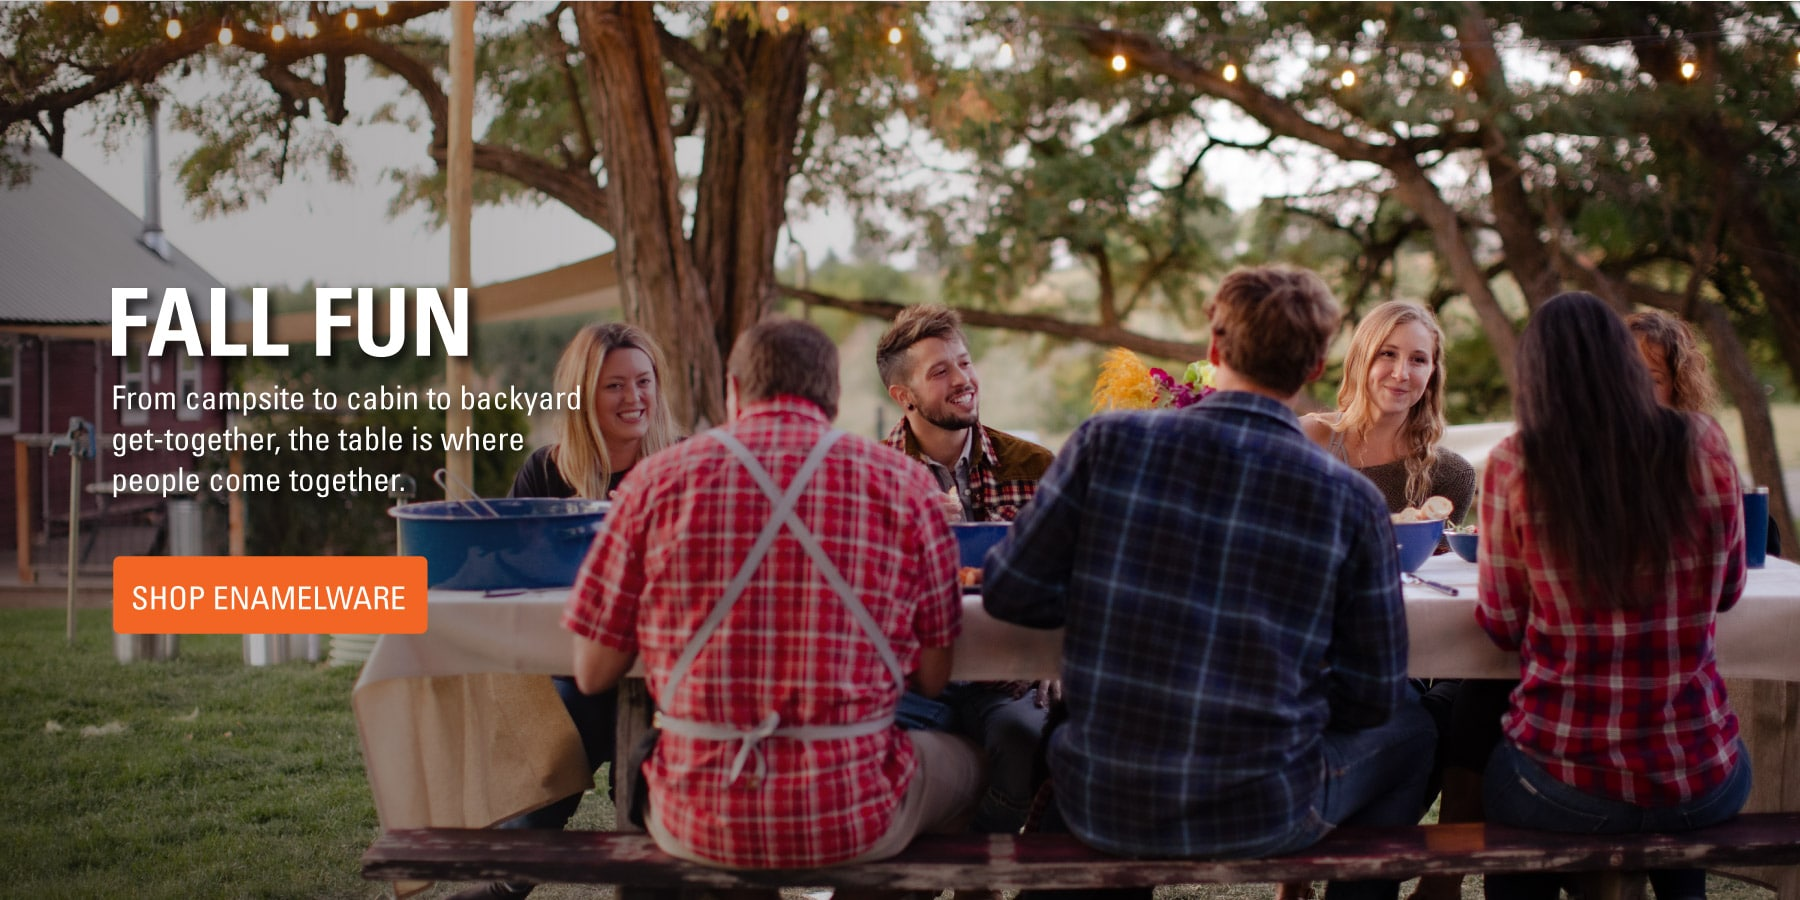 From campsite to cabin to backyard get-together, we are better when we are together. Shop Enamelware